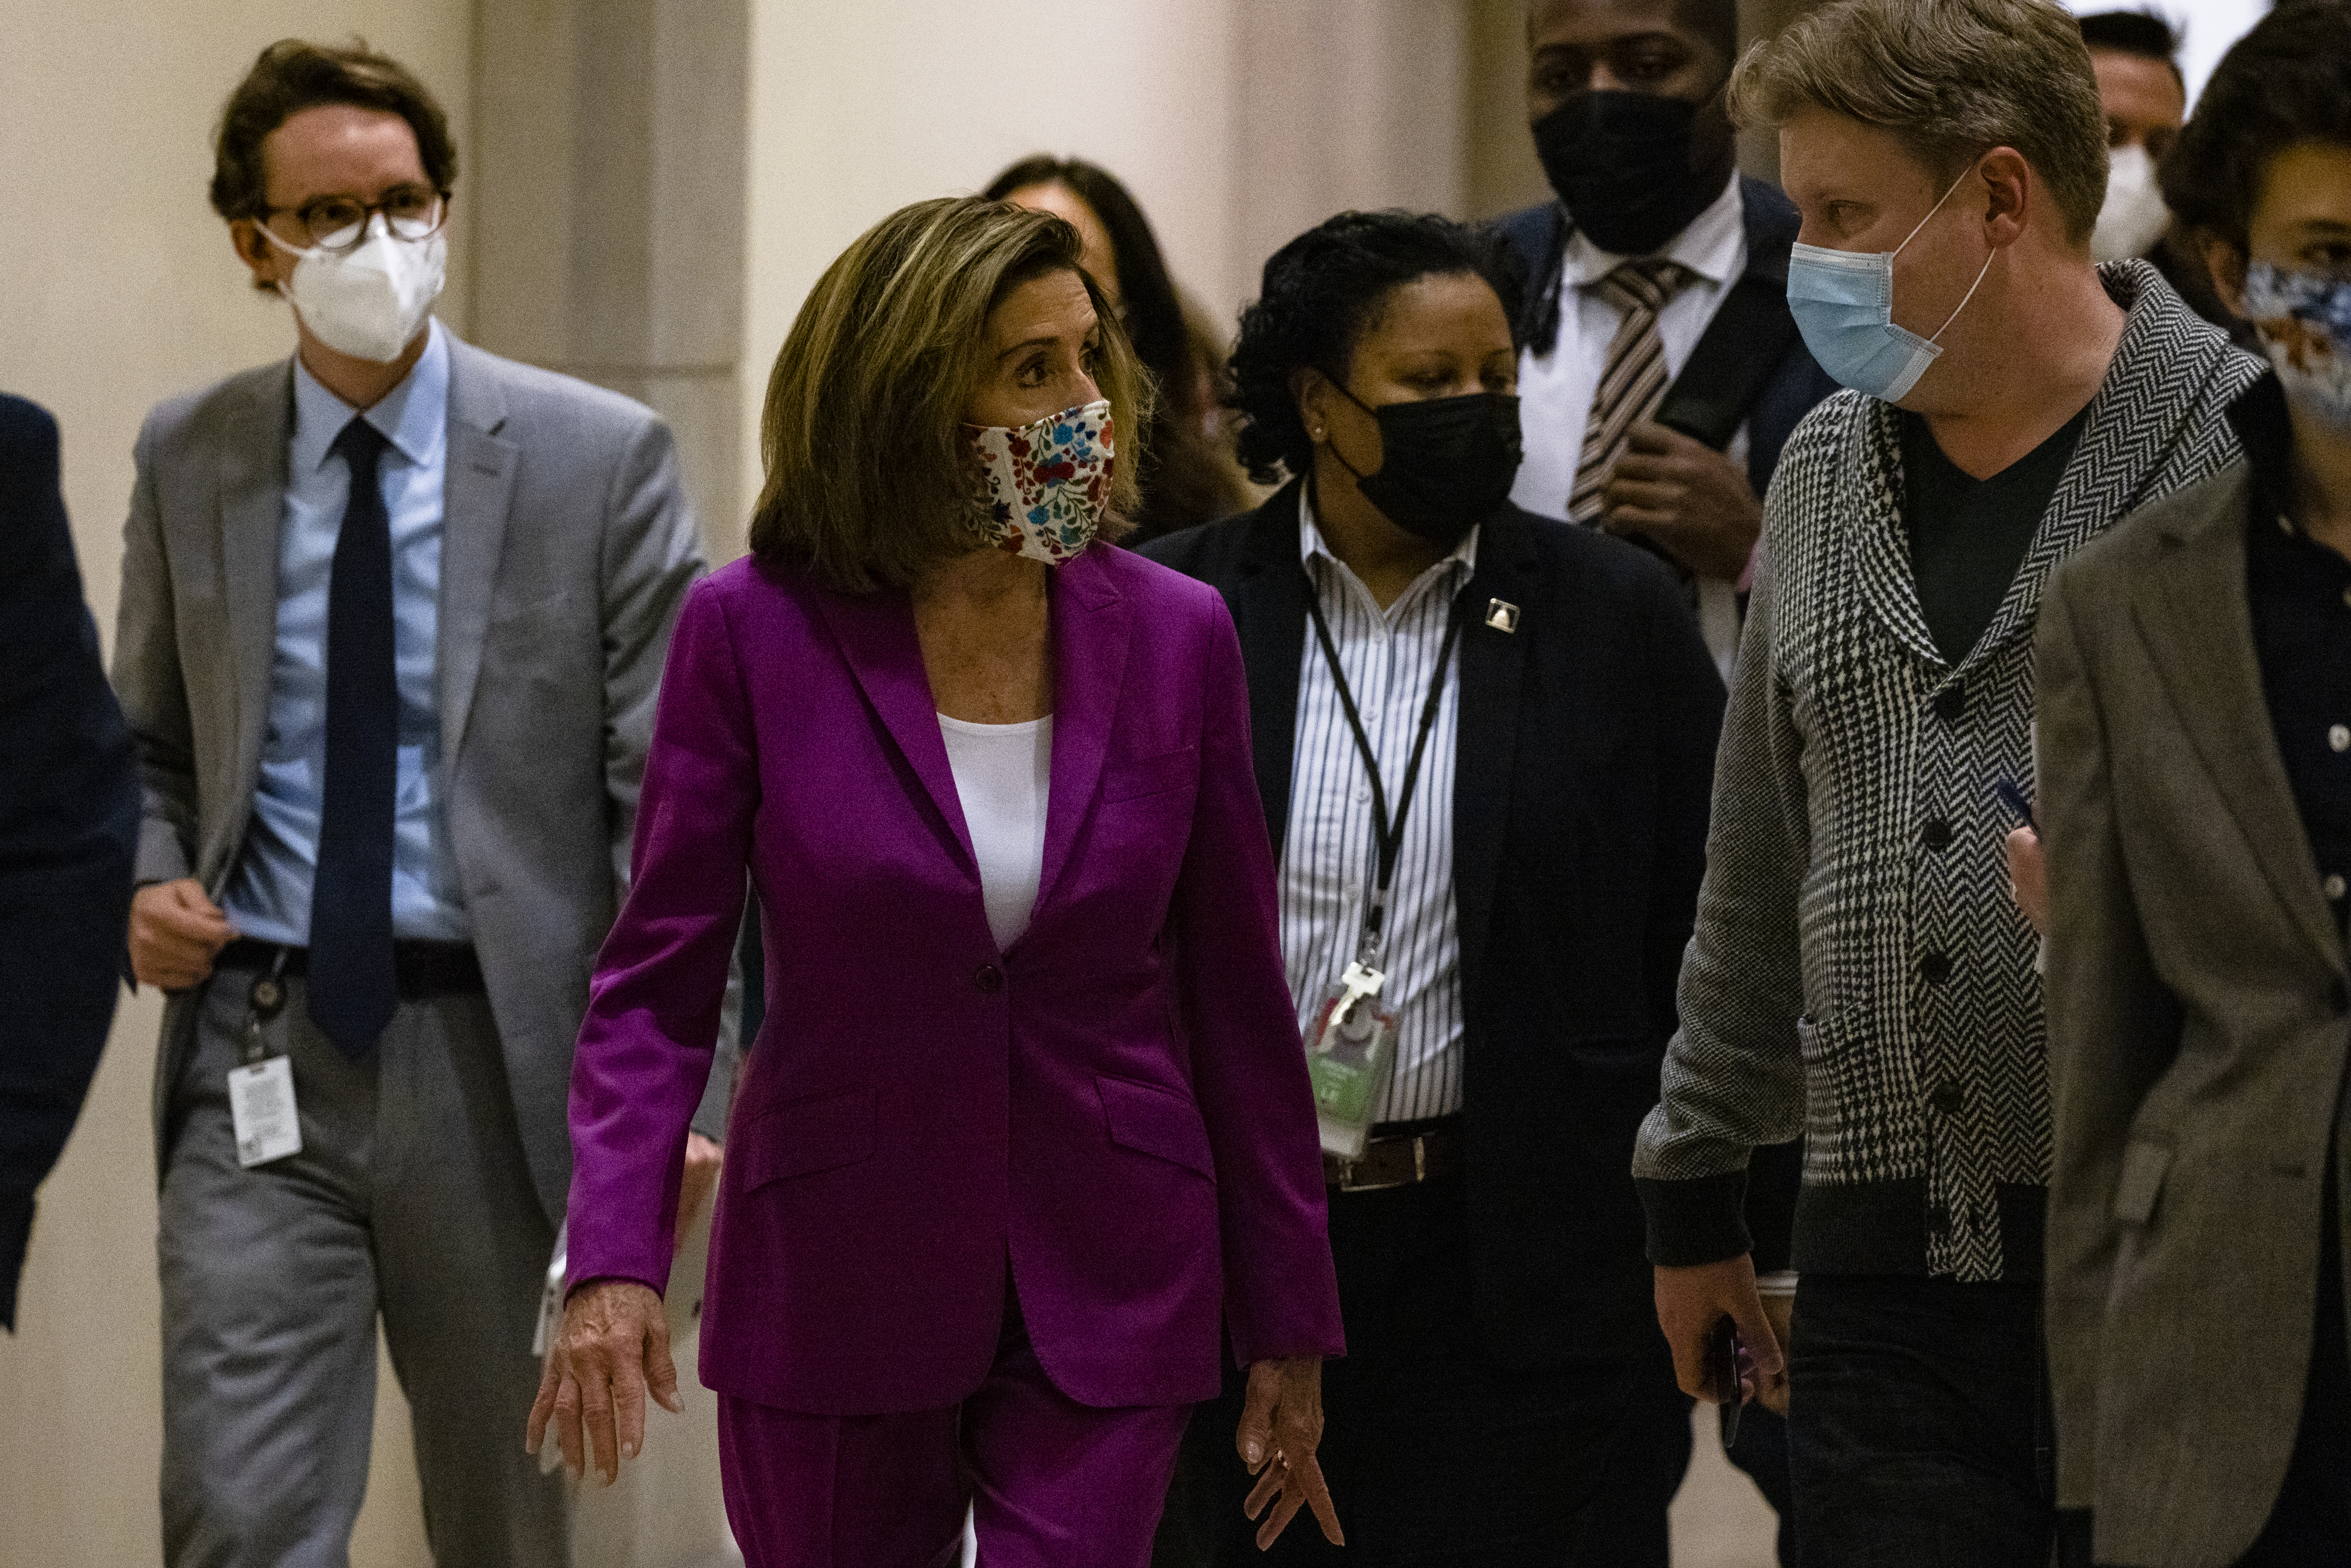 WASHINGTON, DC - JANUARY 07: Speaker of the House Nancy Pelosi heads back to her office after calling for the removal of President Donald Trump from office either by invocation of the 25th Amendment by Vice President Mike Pence and a majority of the Cabinet members or Impeachment at the U.S. Capitol on January 7, 2021 in Washington, DC. Following a rally yesterday with President Trump on the National Mall, a pro-Trump mob stormed and broke into the U.S. Capitol building causing the Joint Session of Congress to delay the certification of President-elect Joe Biden's victory over President Trump. (Photo by Samuel Corum/Getty Images)